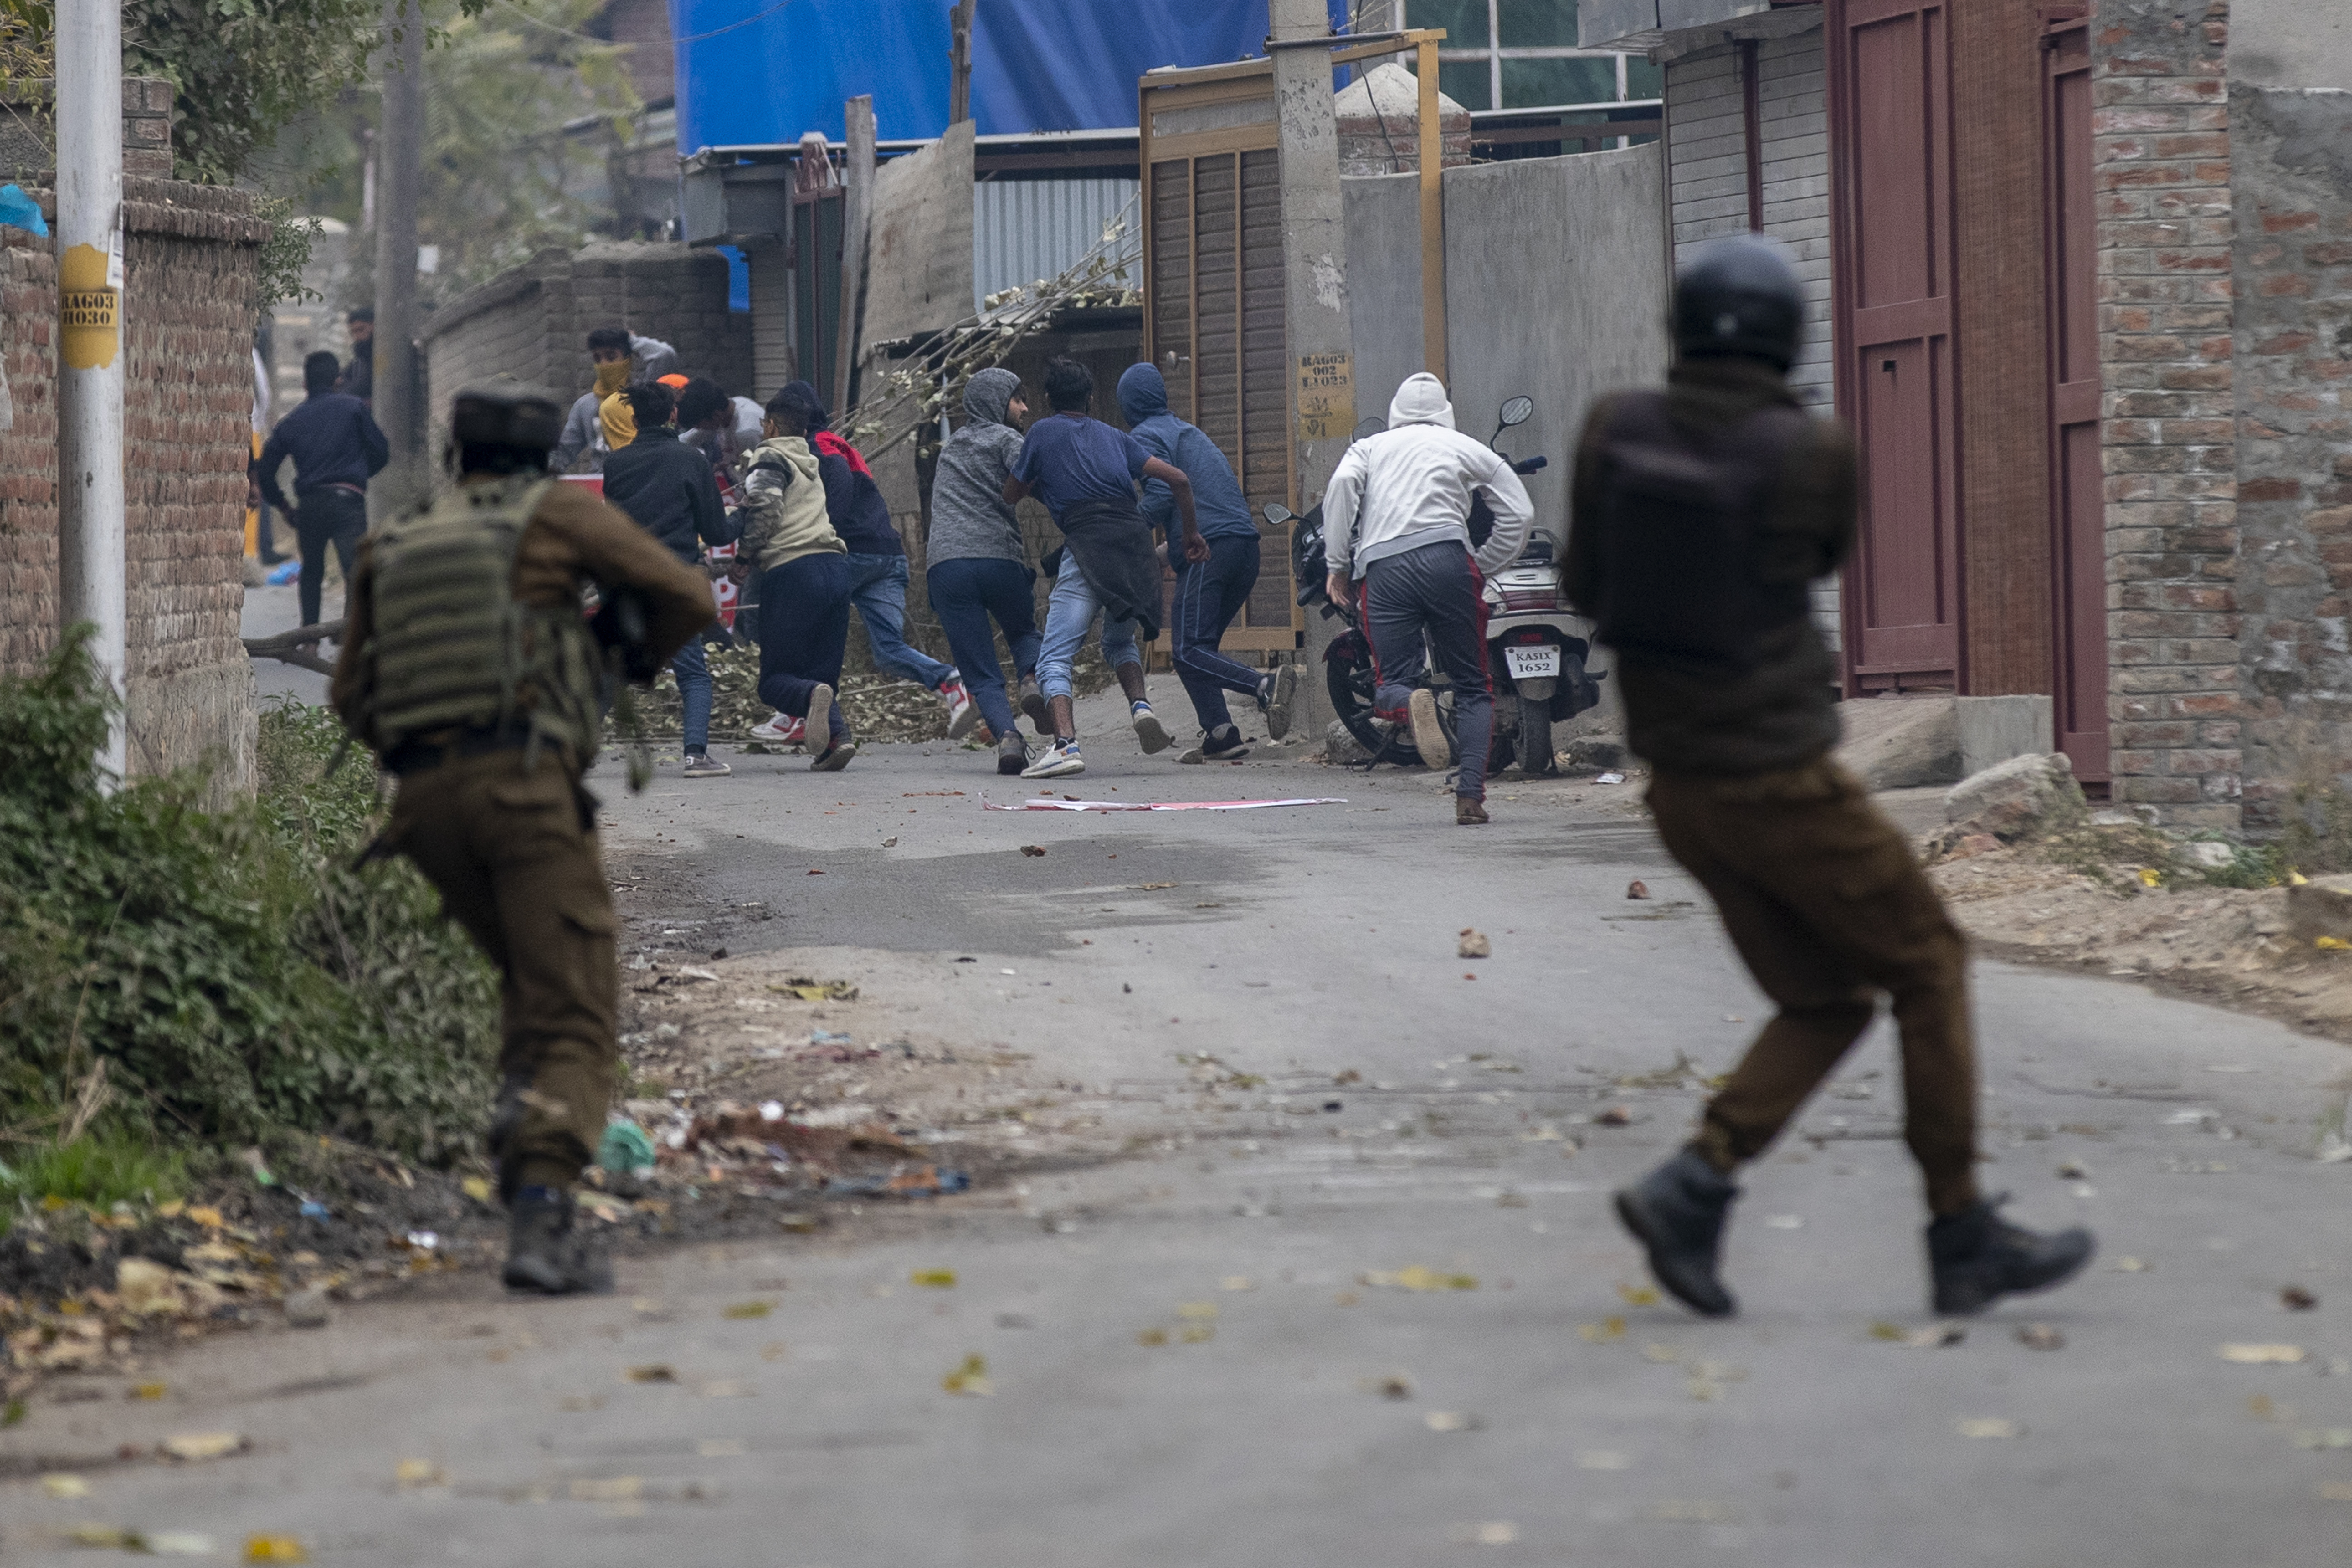 Hizbul Mujahideen Operational Commander Killed, Associate Arrested During Encounter in Srinagar